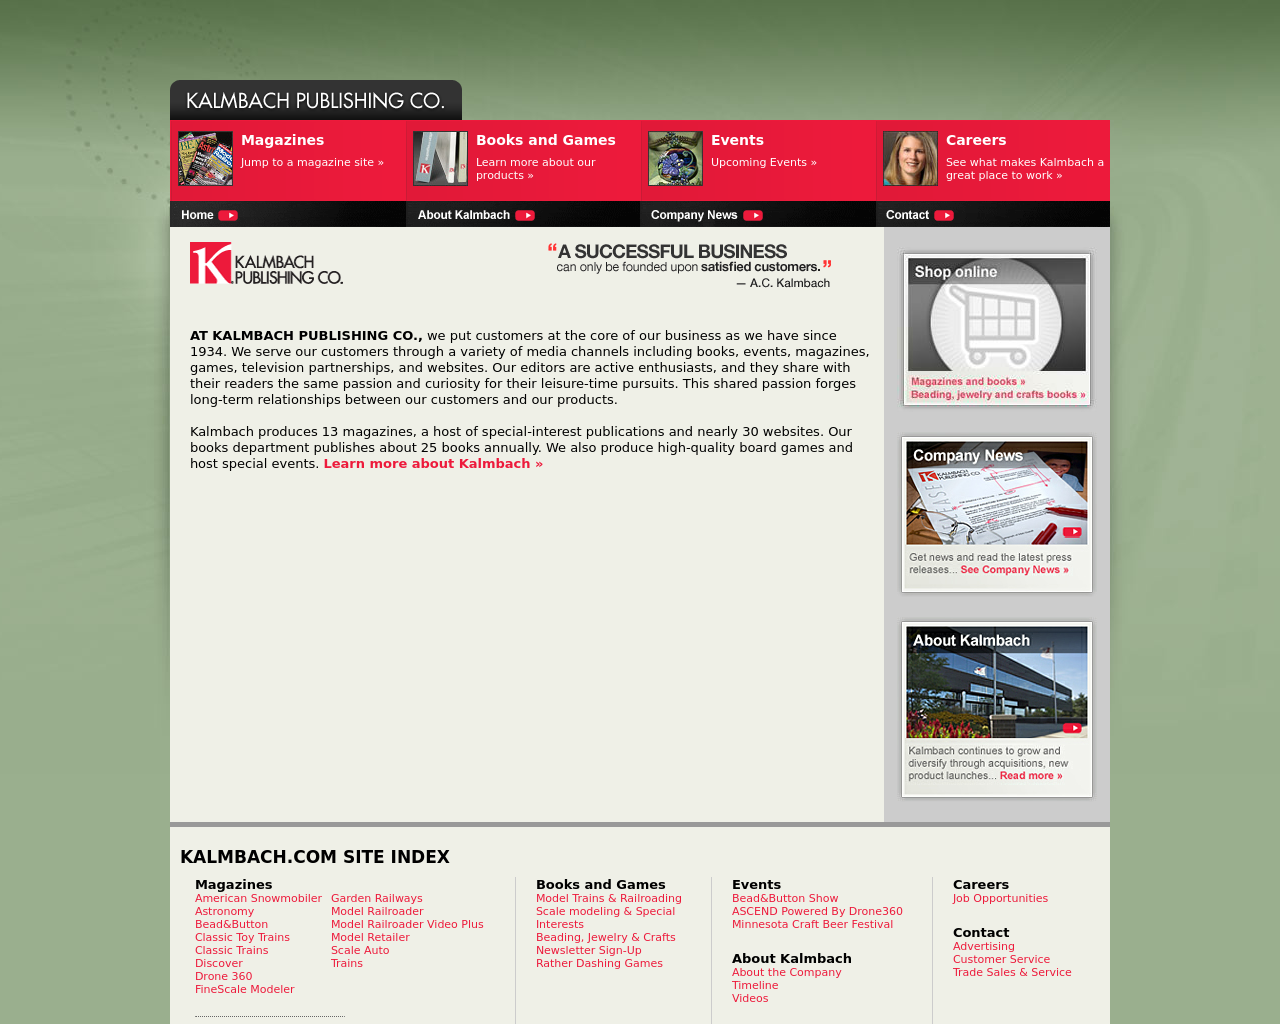 Kalmbach-Publishing-Co.-Advertising-Reviews-Pricing